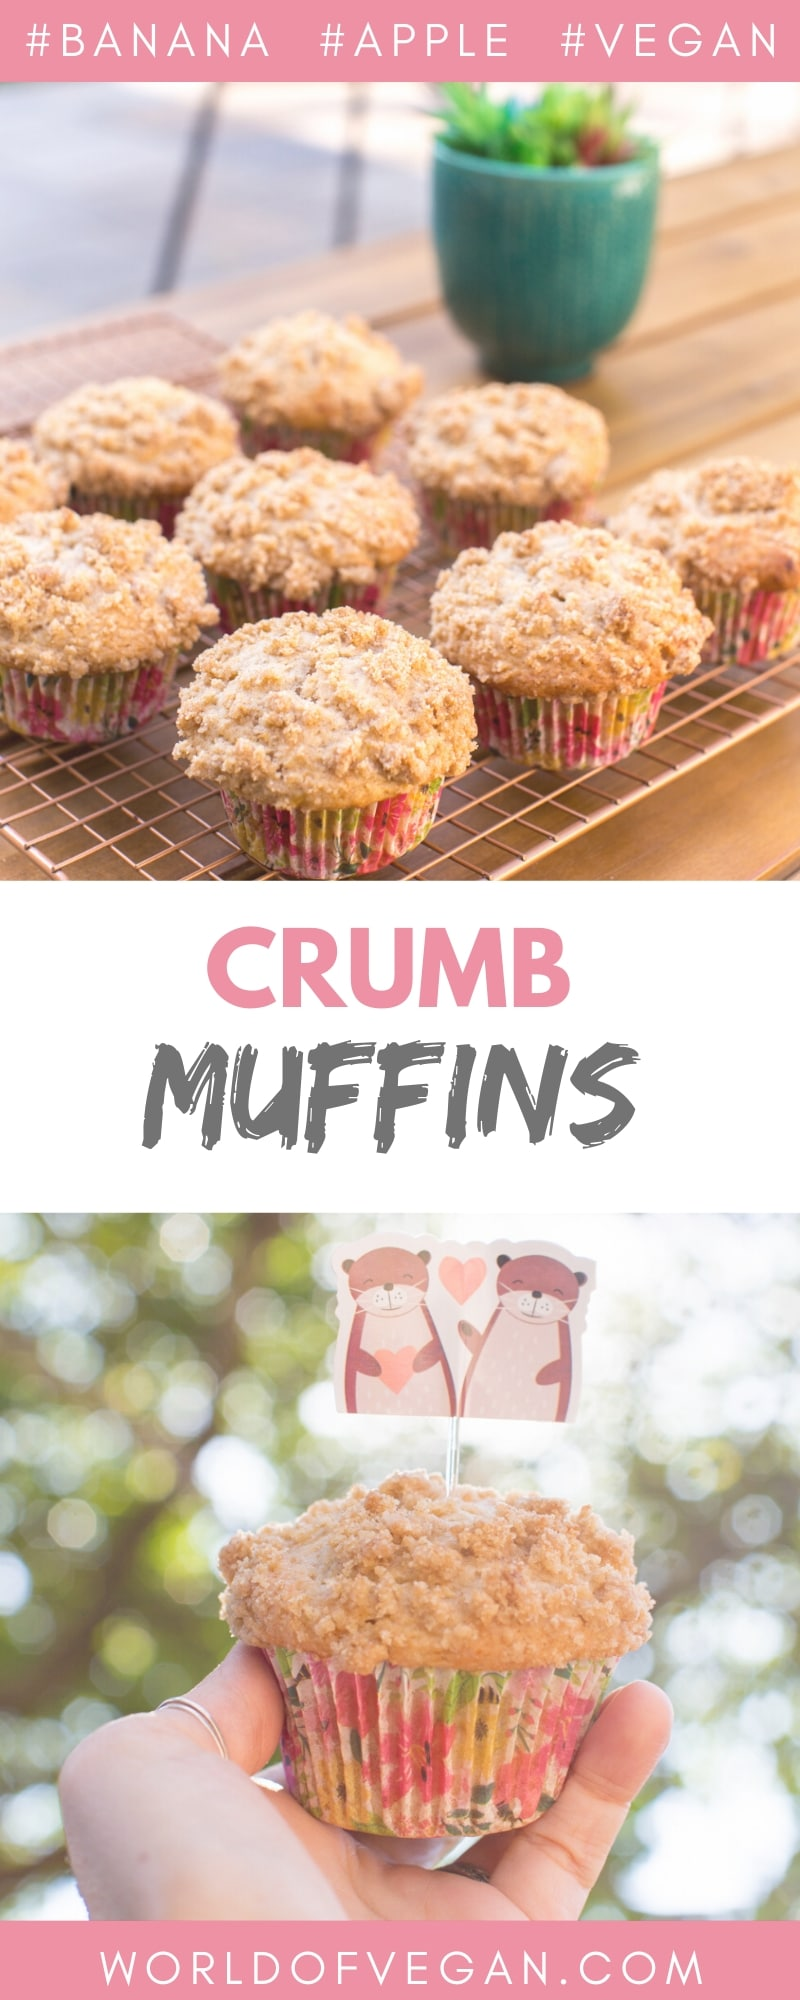 Vegan Crumb Muffins With Apple Cinnamon & Banana | WorldofVegan.com #vegan #muffins #dessert #breakfast